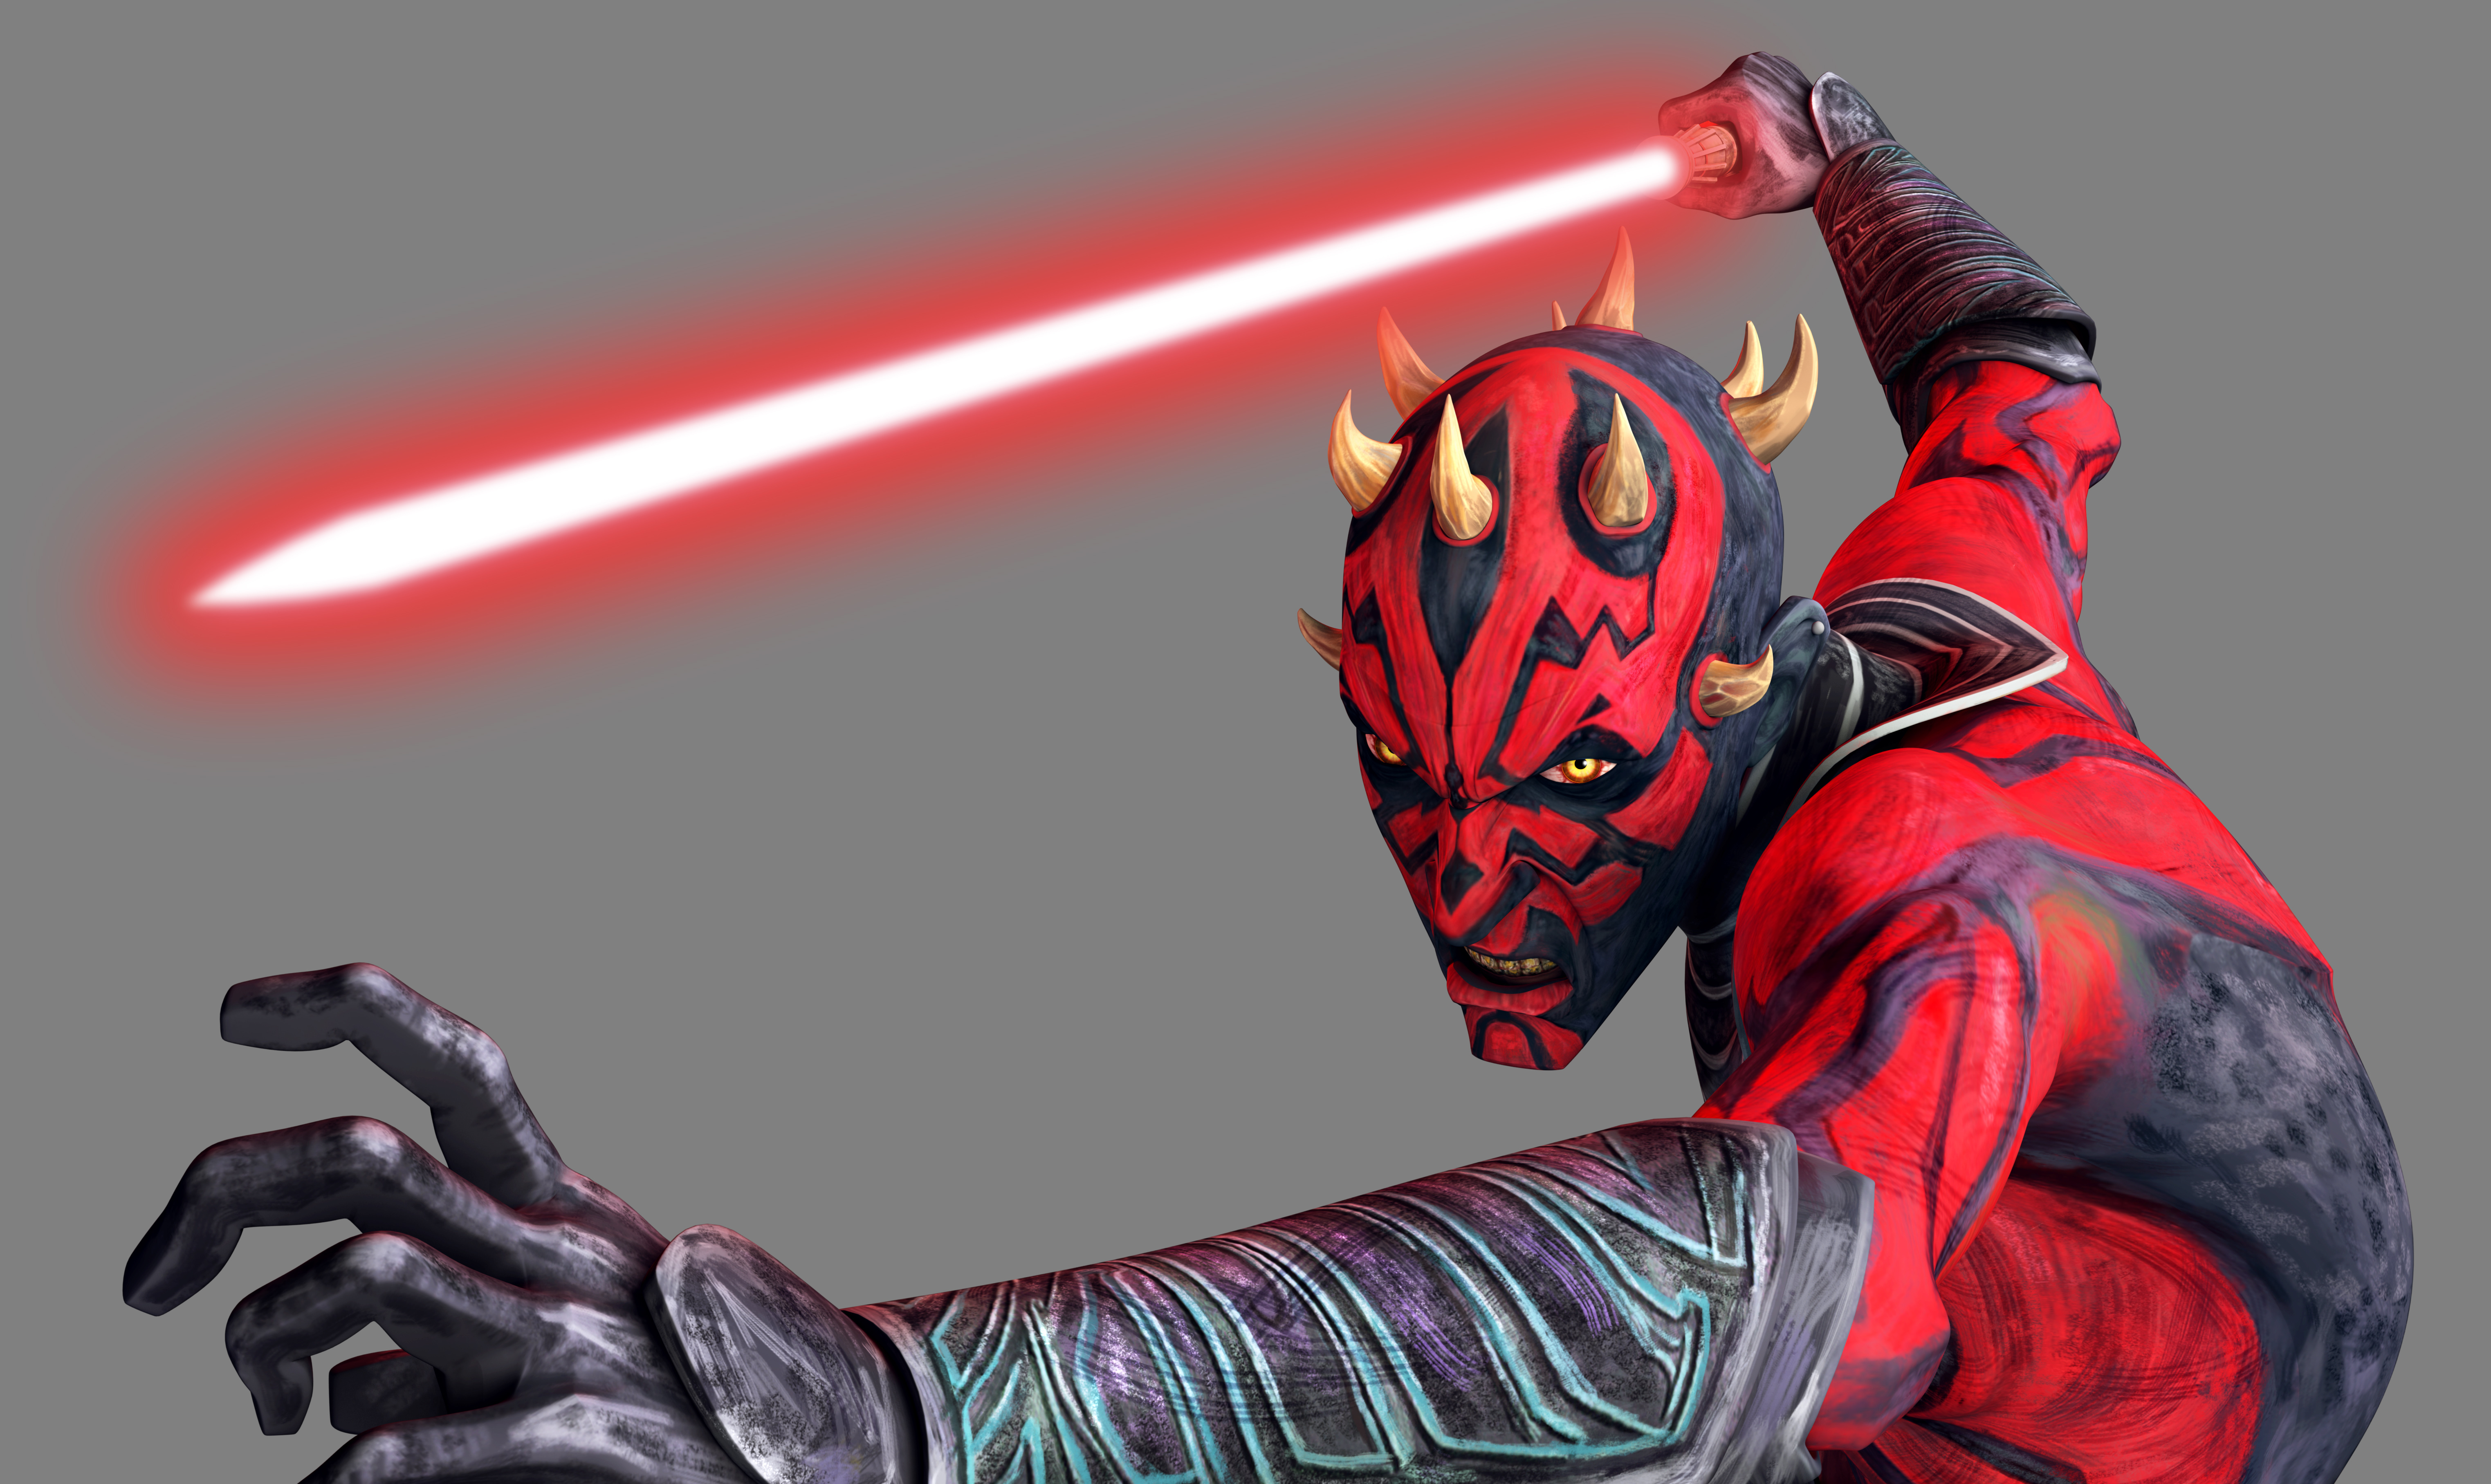 Darth Maul was a male Dathomirian Zabrak Dark Lord of the Sith who lived during the waning years of the Galactic Republic Originally a Dathomiri Nightbrother born on